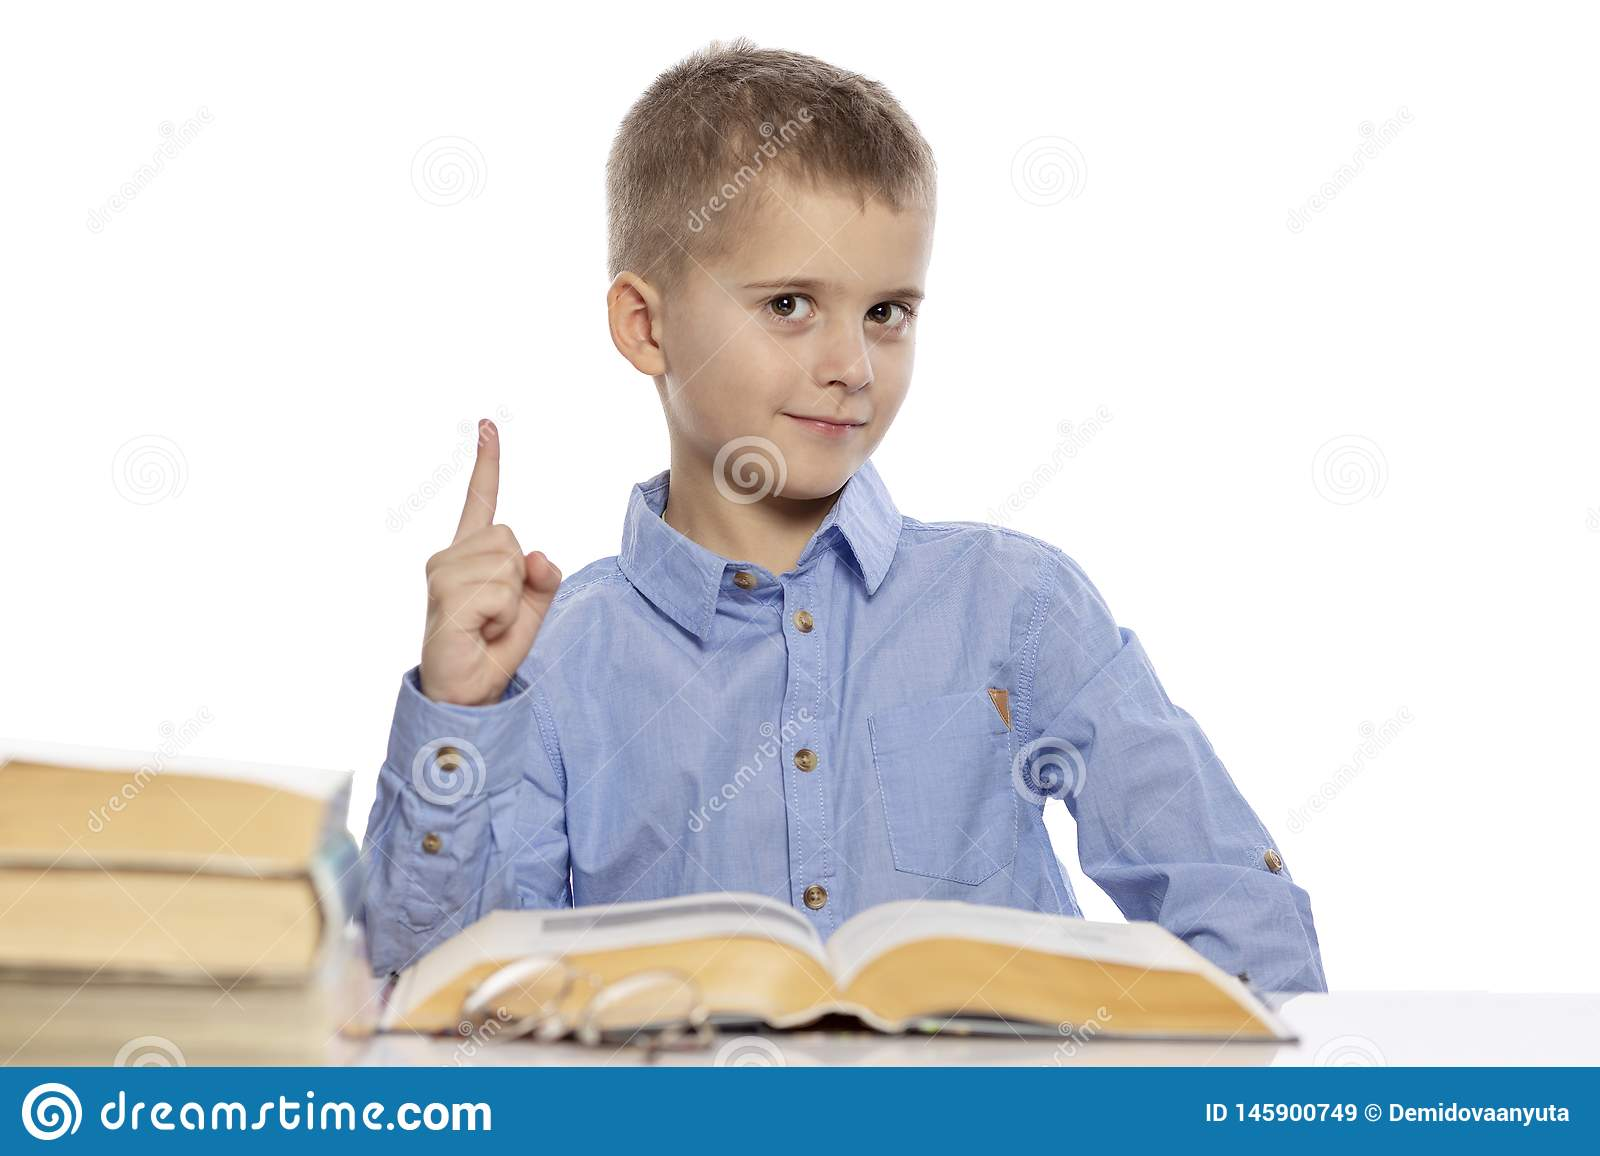 Cute smiling schoolboy sitting at the table with lessons. He raised his finger up. Isolated on a white background